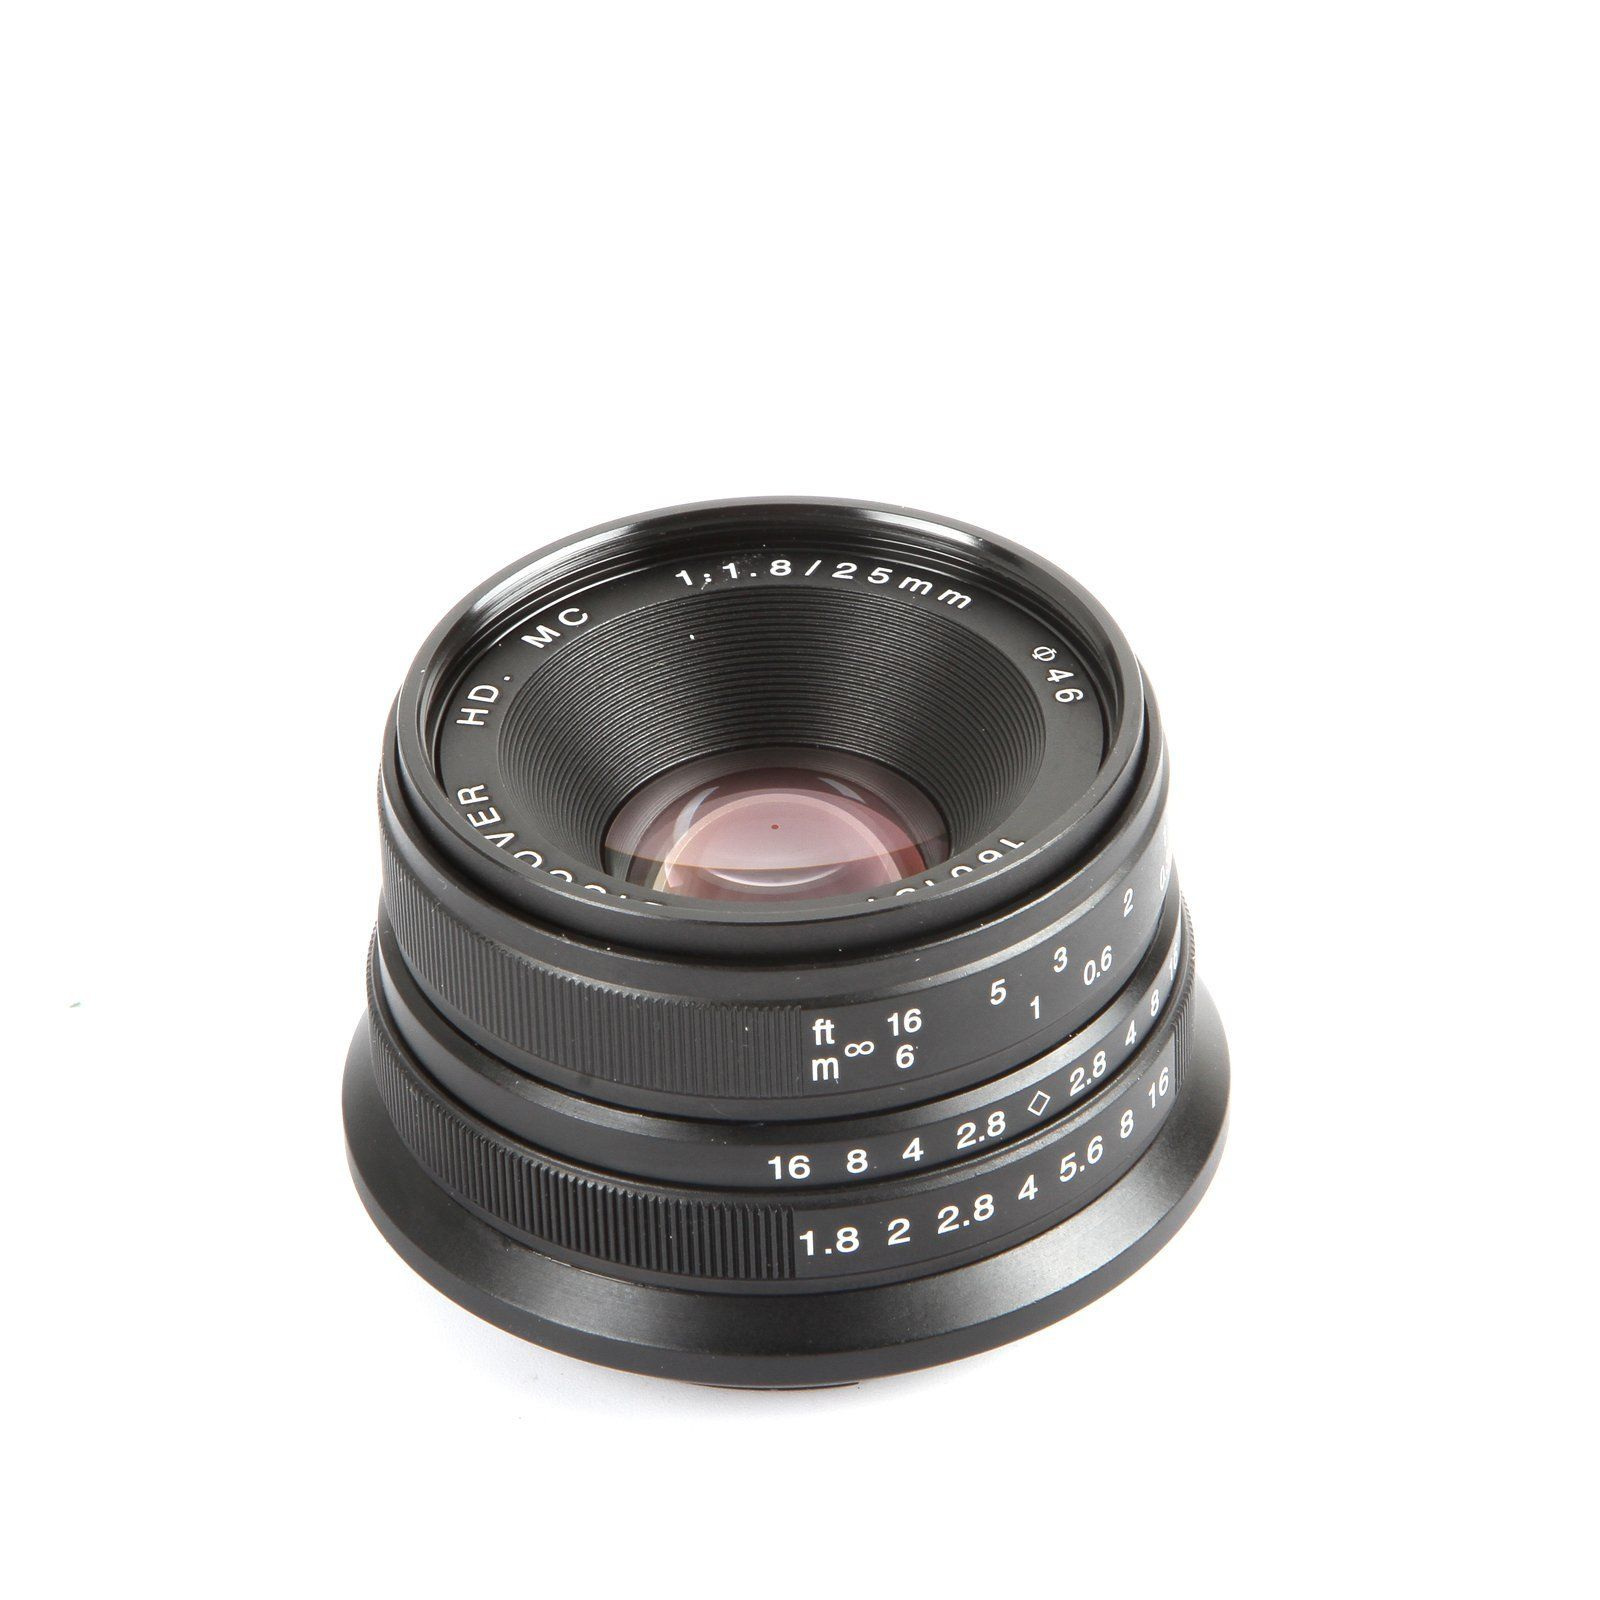 25mm F1.8 F/1.8 HD MC Manual Movie Wide Angle Lens for Fujifilm fx X-A1 XA2 X-A3 X-M1 X-E1 X-E2 X-Pro1 X-T1 XT2 XT10 XT20 camera25mm F1.8 F/1.8 HD MC Manual Movie Wide Angle Lens for Fujifilm fx X-A1 XA2 X-A3 X-M1 X-E1 X-E2 X-Pro1 X-T1 XT2 XT10 XT20 camera